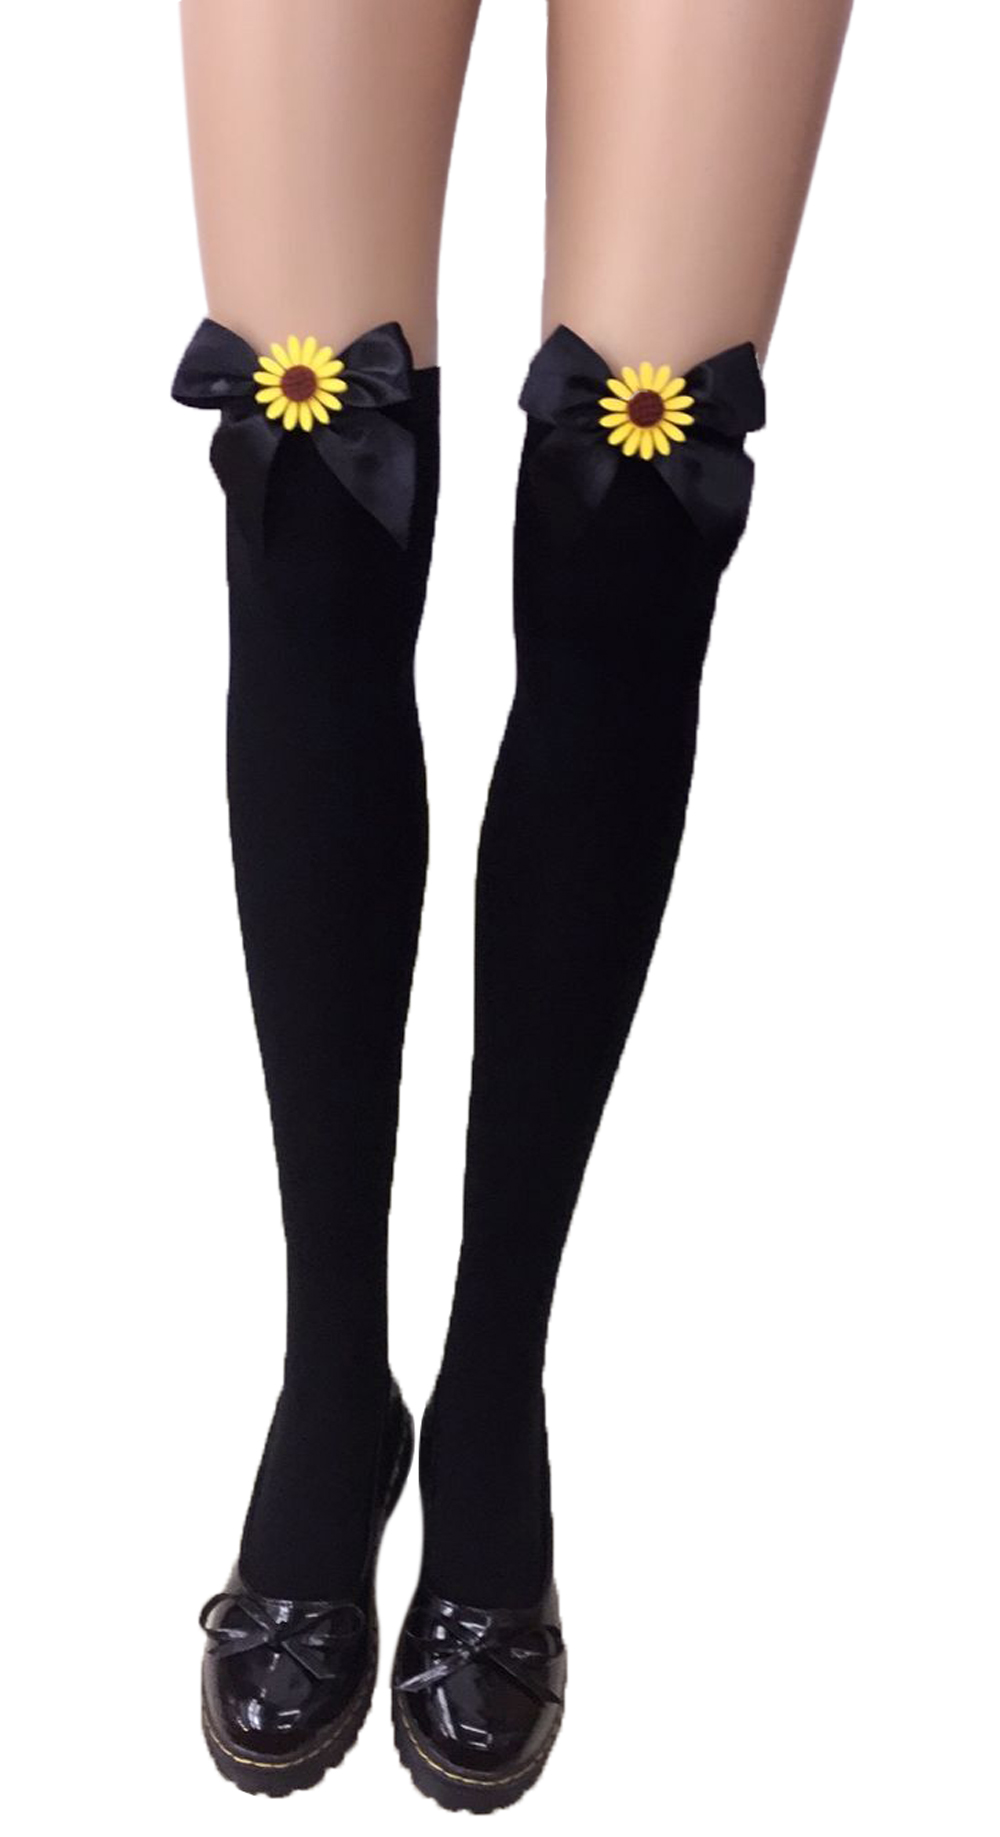 F8195-8  Thigh Stocking with Satin Bows Opaque Over The Knee Halloween Socks